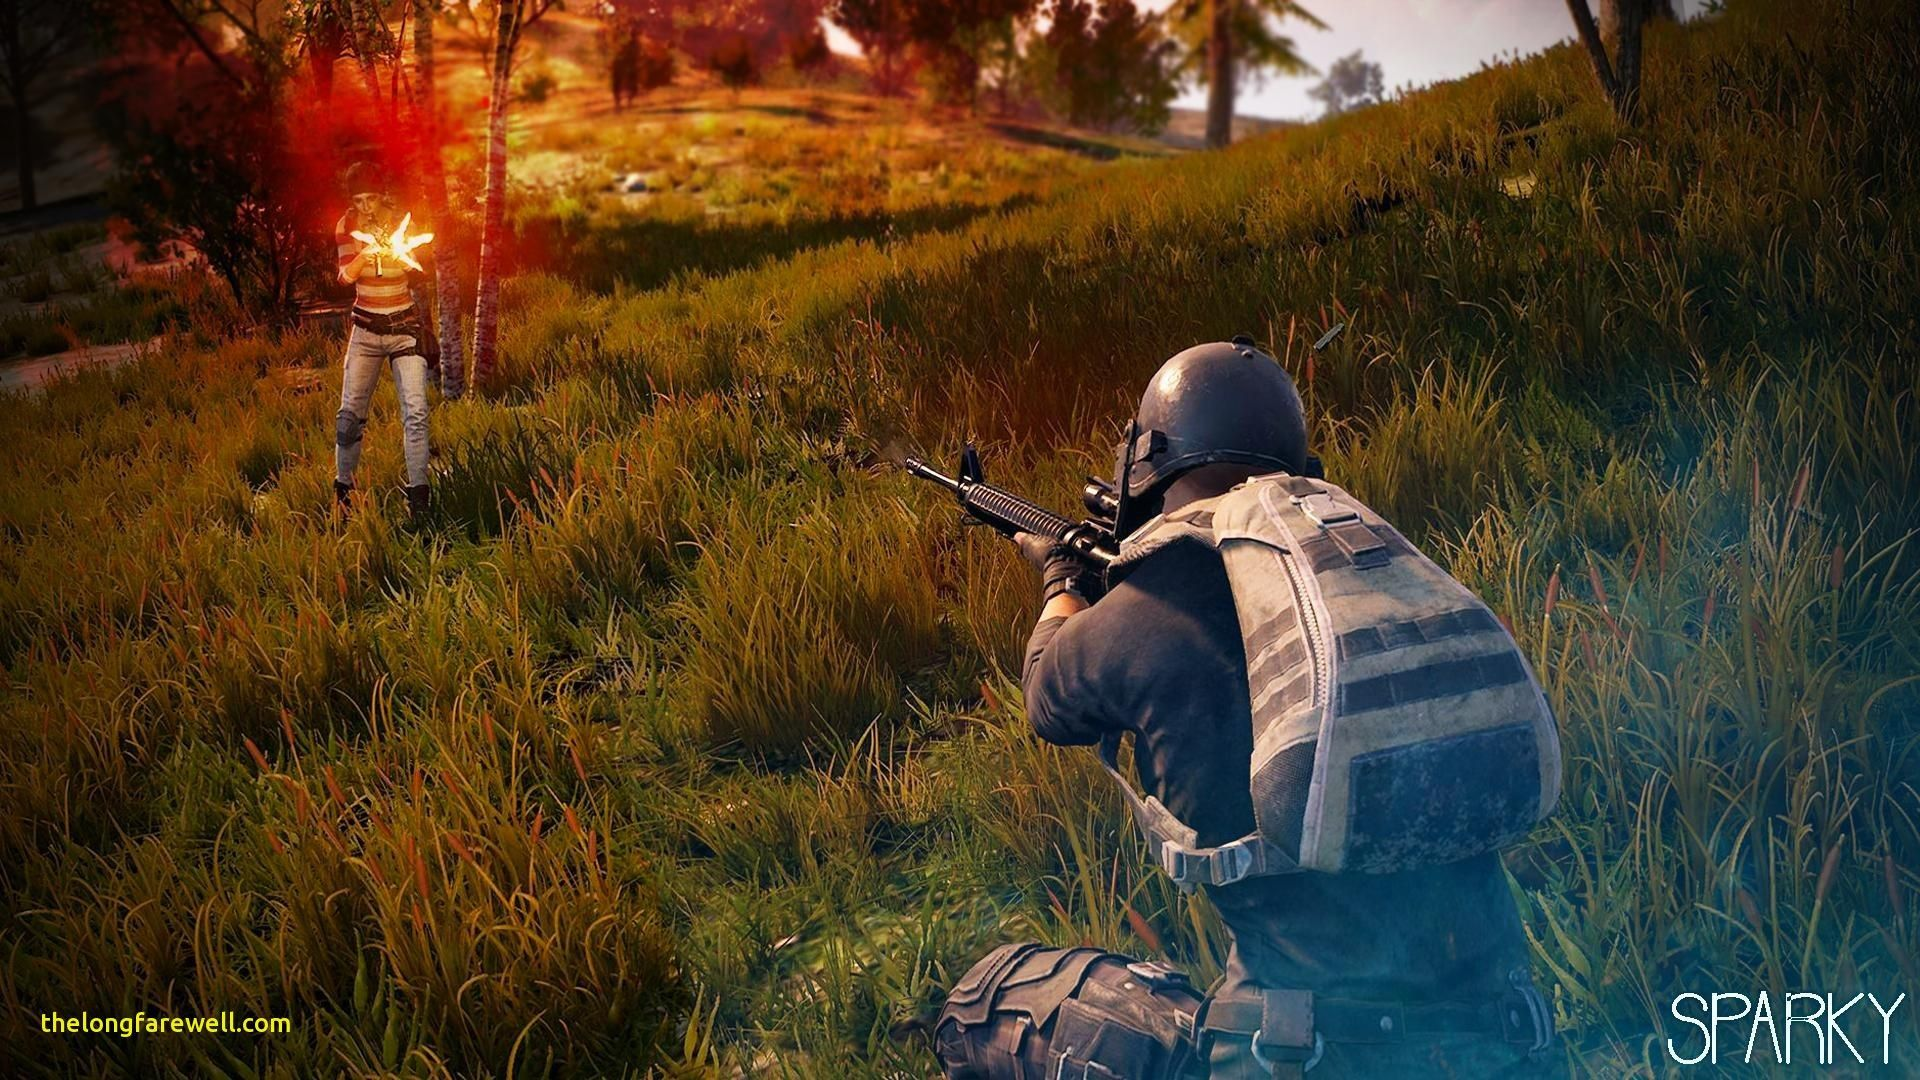 wp3276808 pubg 4k wallpapers - Player Unknown's Battlegrounds (PUBG) 4K - Pubg wallpaper phone, pubg wallpaper iphone, pubg wallpaper 1920x1080 hd, pubg hd wallpapers, pubg 4k wallpapers, Player Unknown's Battlegrounds 4k wallpapers